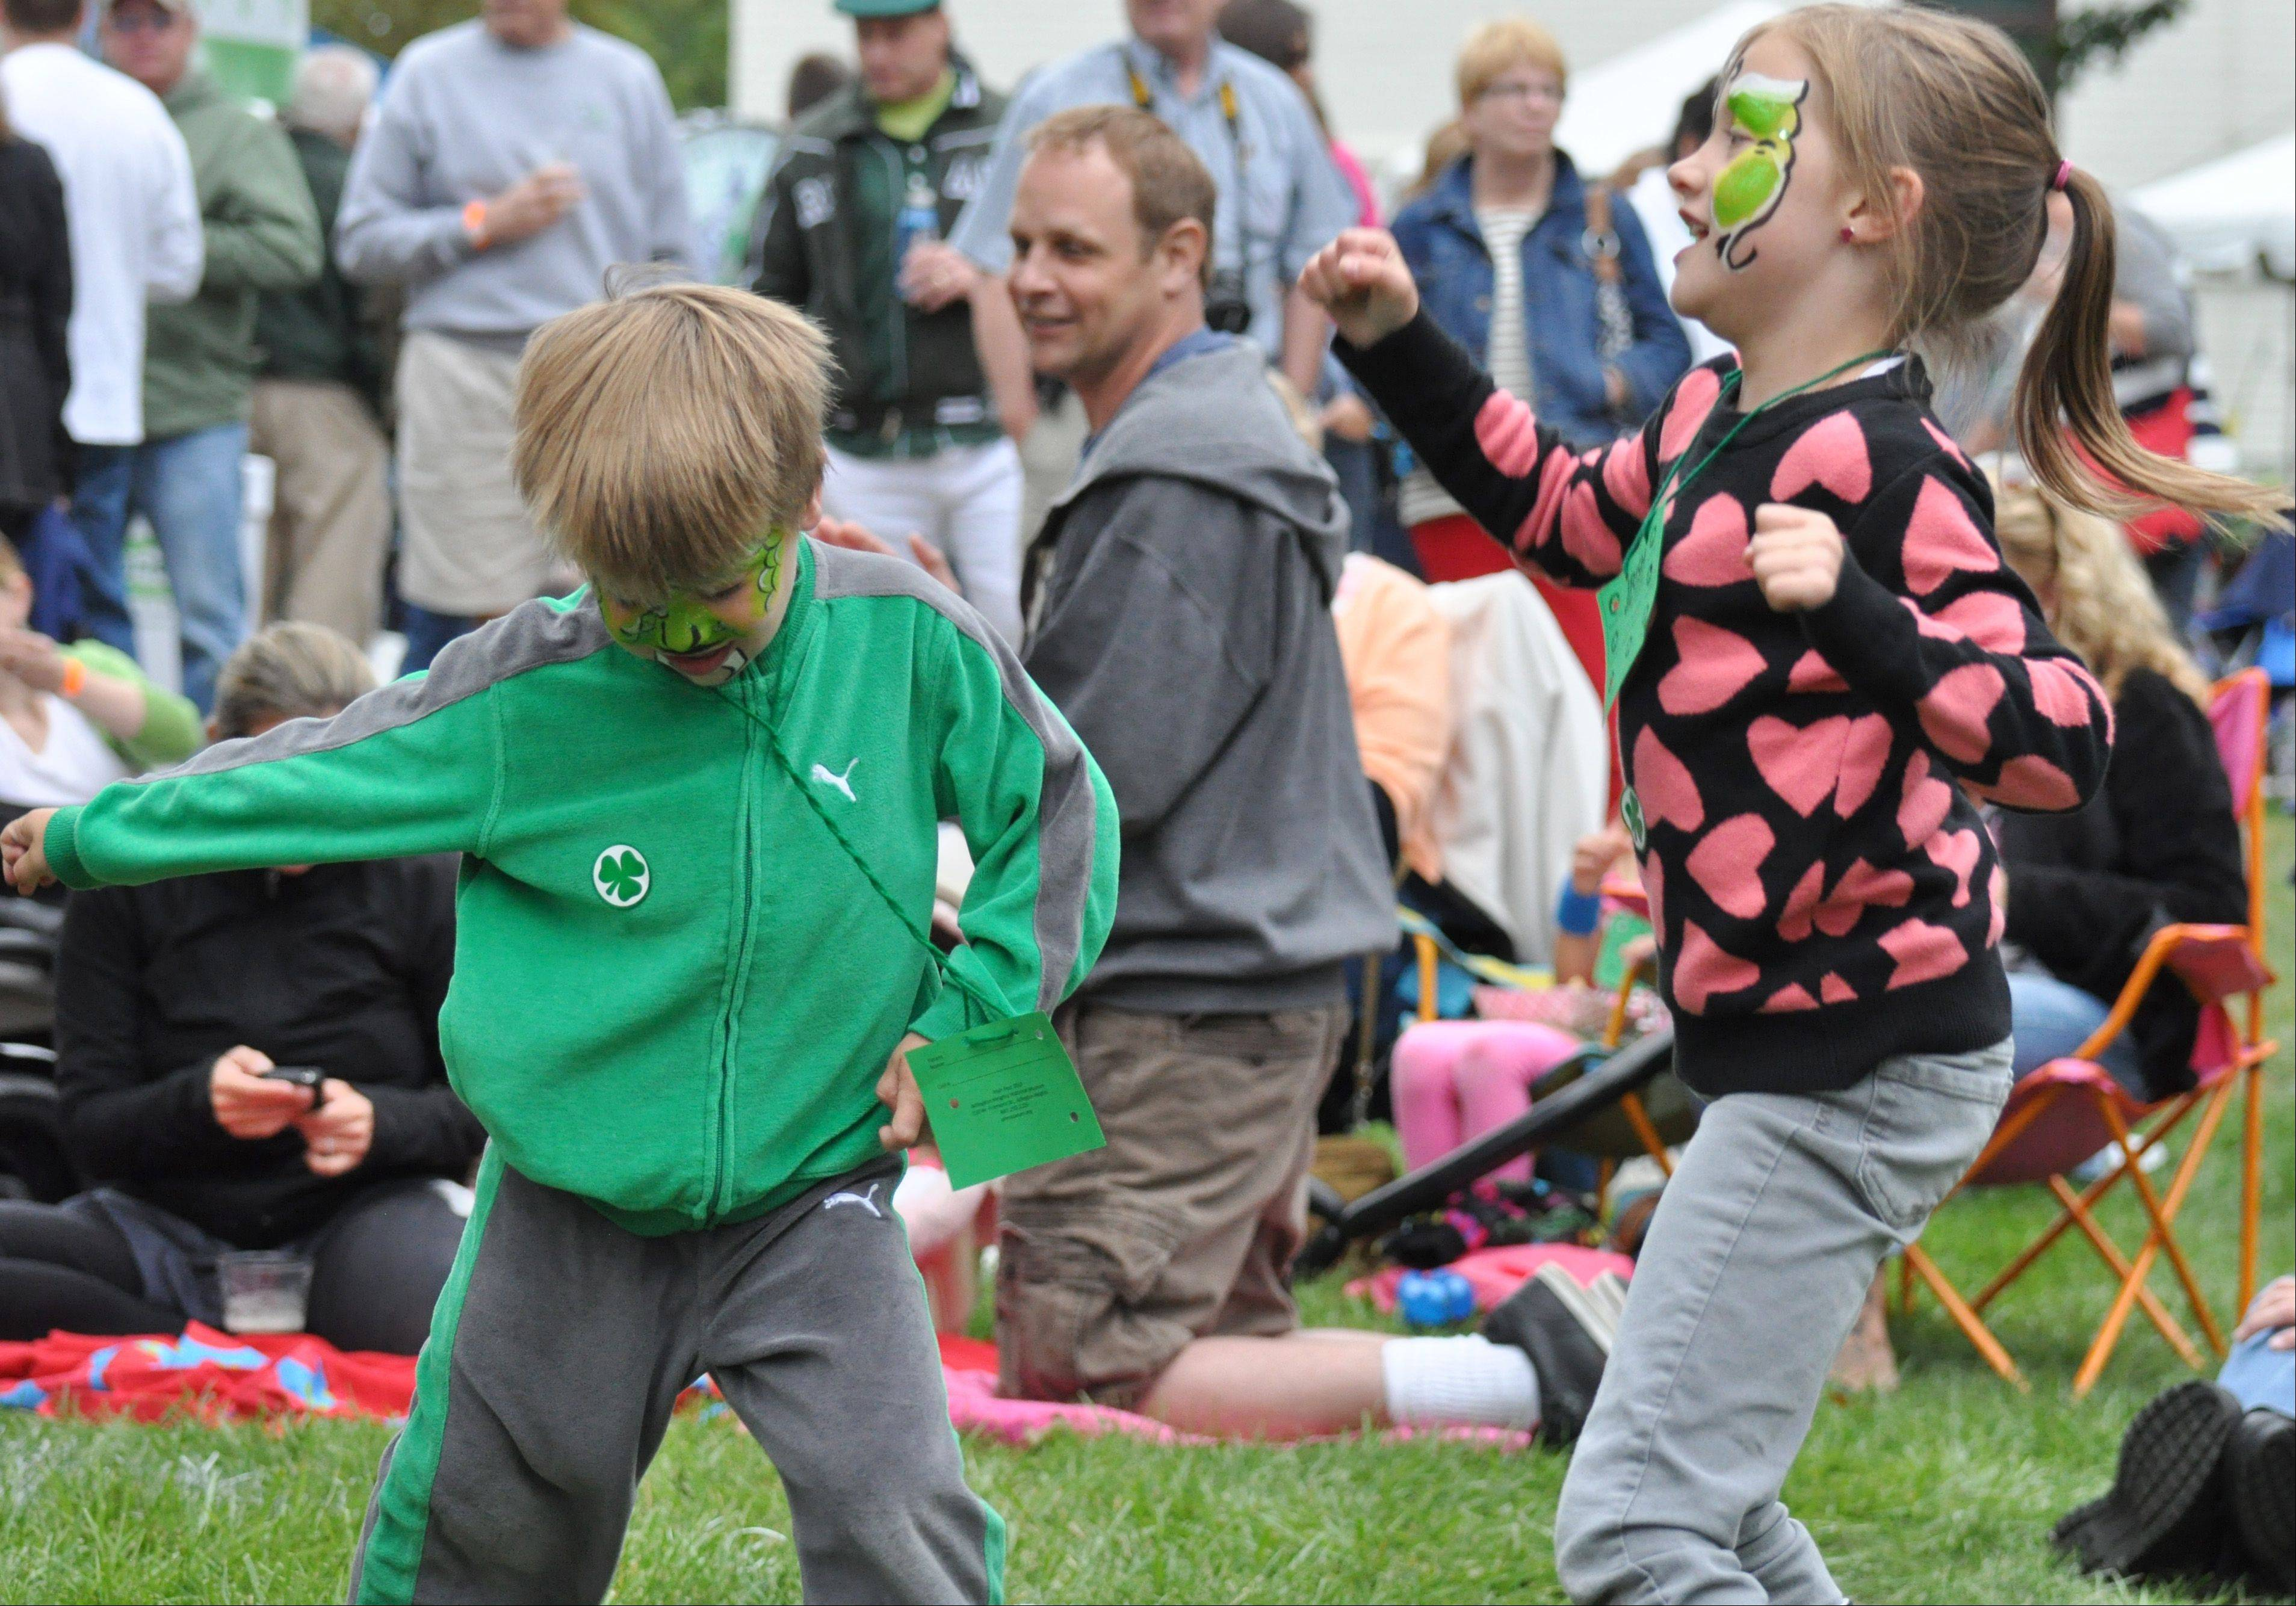 Dave Dvorak/ddvorak@dailyherald.comFrom left, Sam Frye, 5, and sister Isabel, 7, both of Arlington Heights dance to music at the Arlington Heights Irish Fest Saturday, July 27.